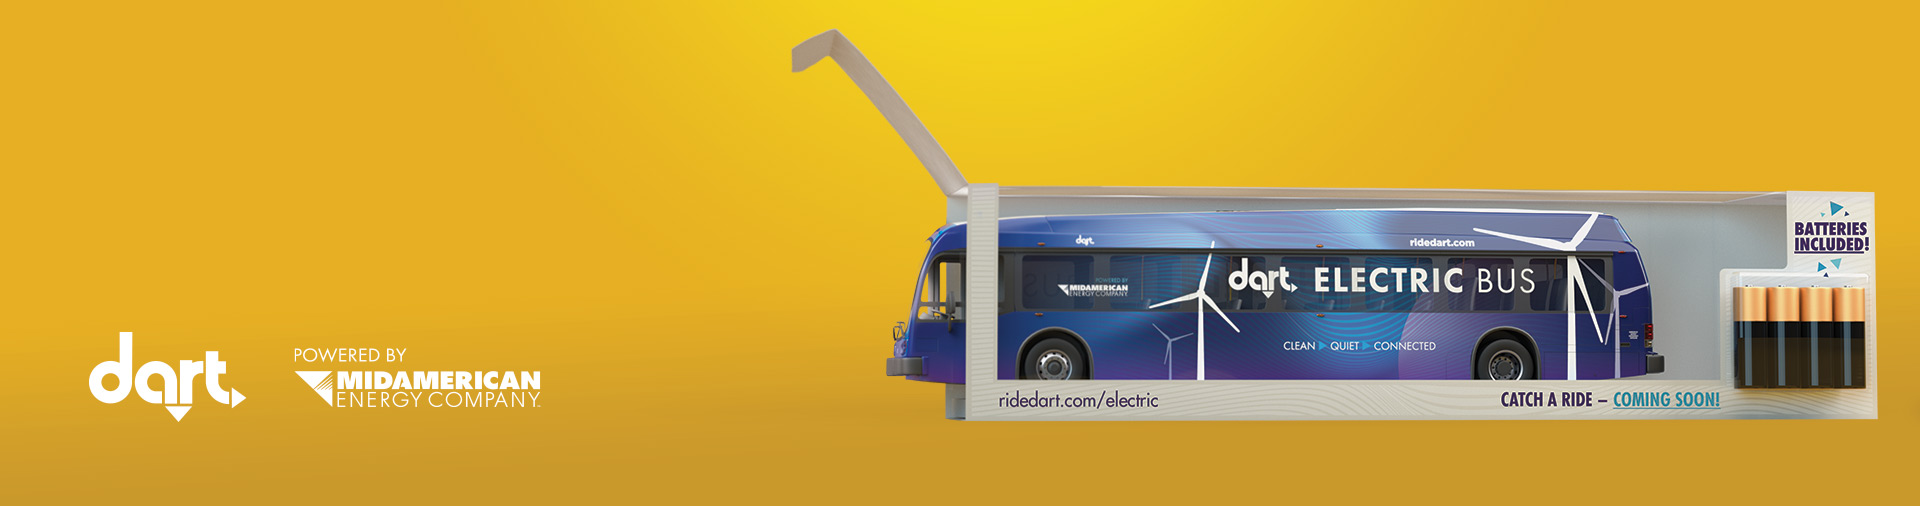 DART Electric Buses Are Here